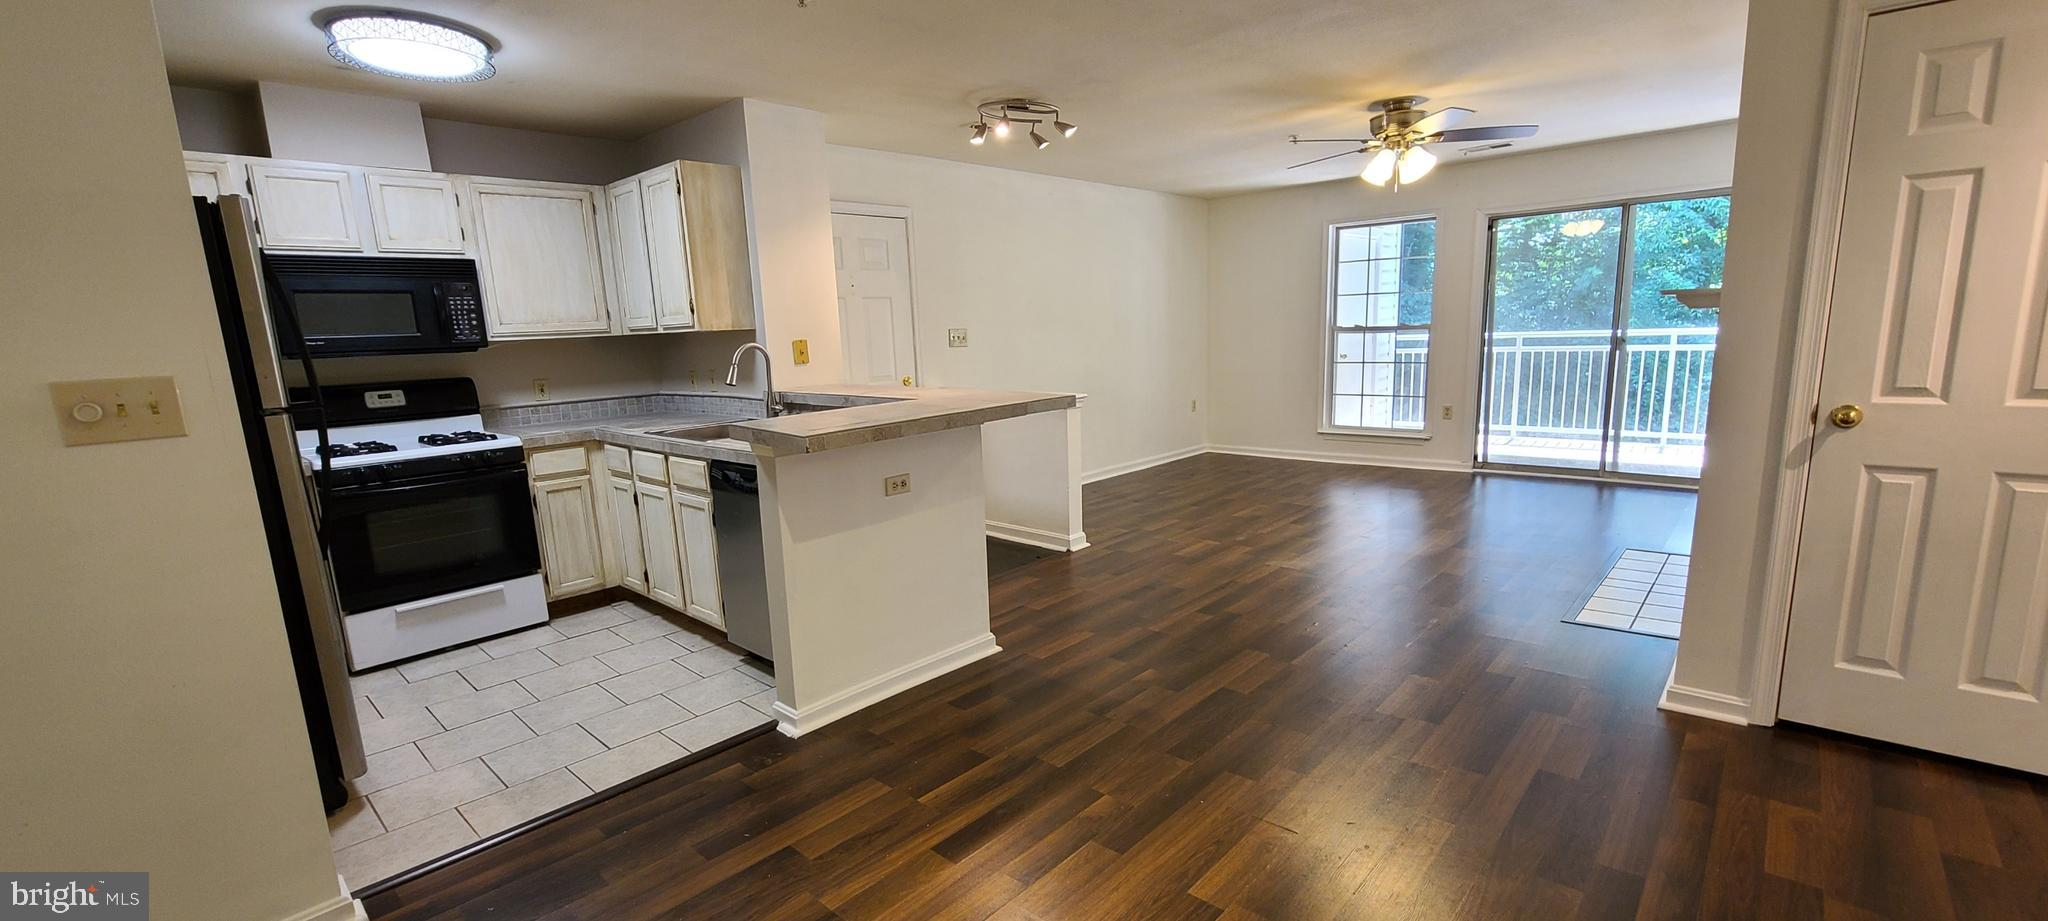 With a total monthly payment of approximately $1,000, Why pay rent? don't miss this great 2 bedroom